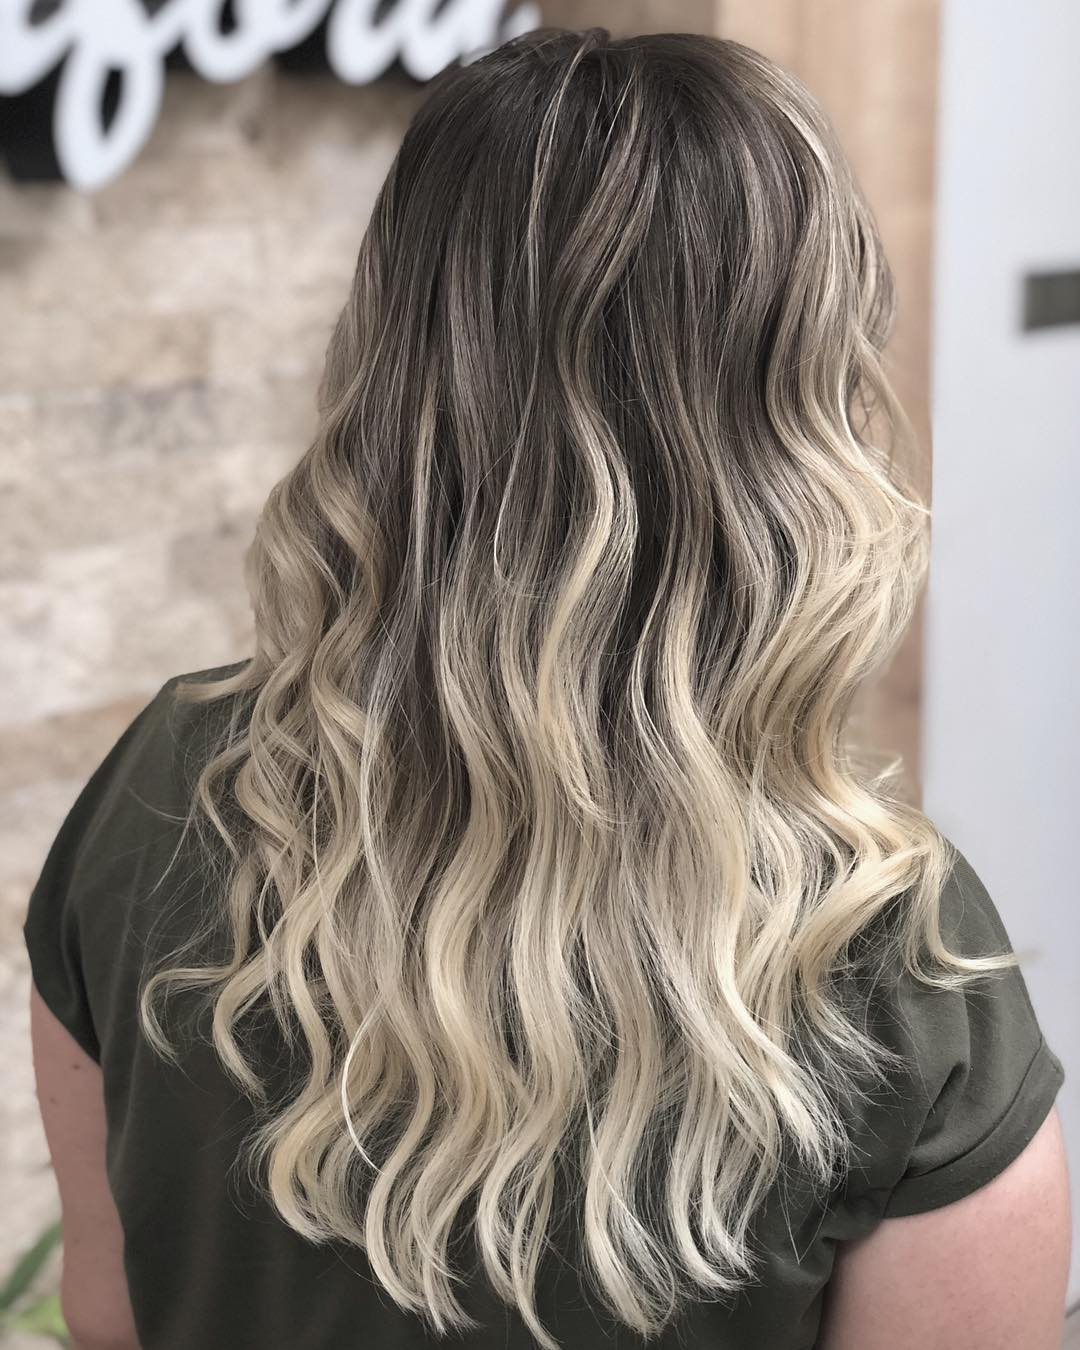 shorthairstyles for ladies with wavy hair 2019-24